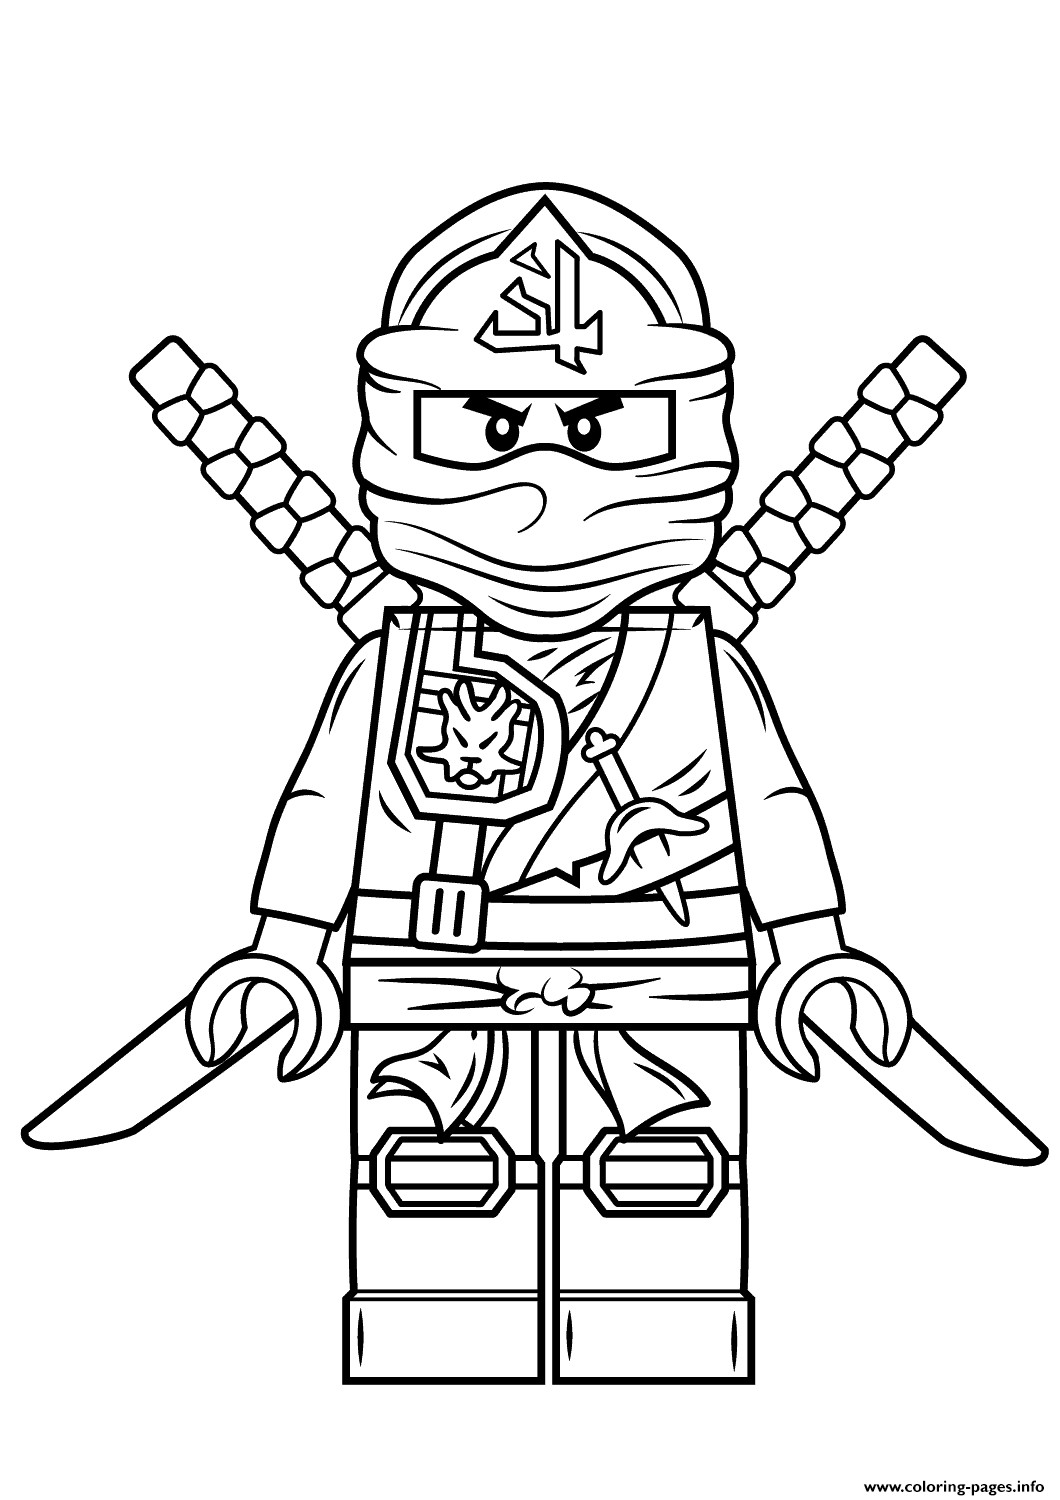 Ninjago Lord Garmadon Coloring Pages